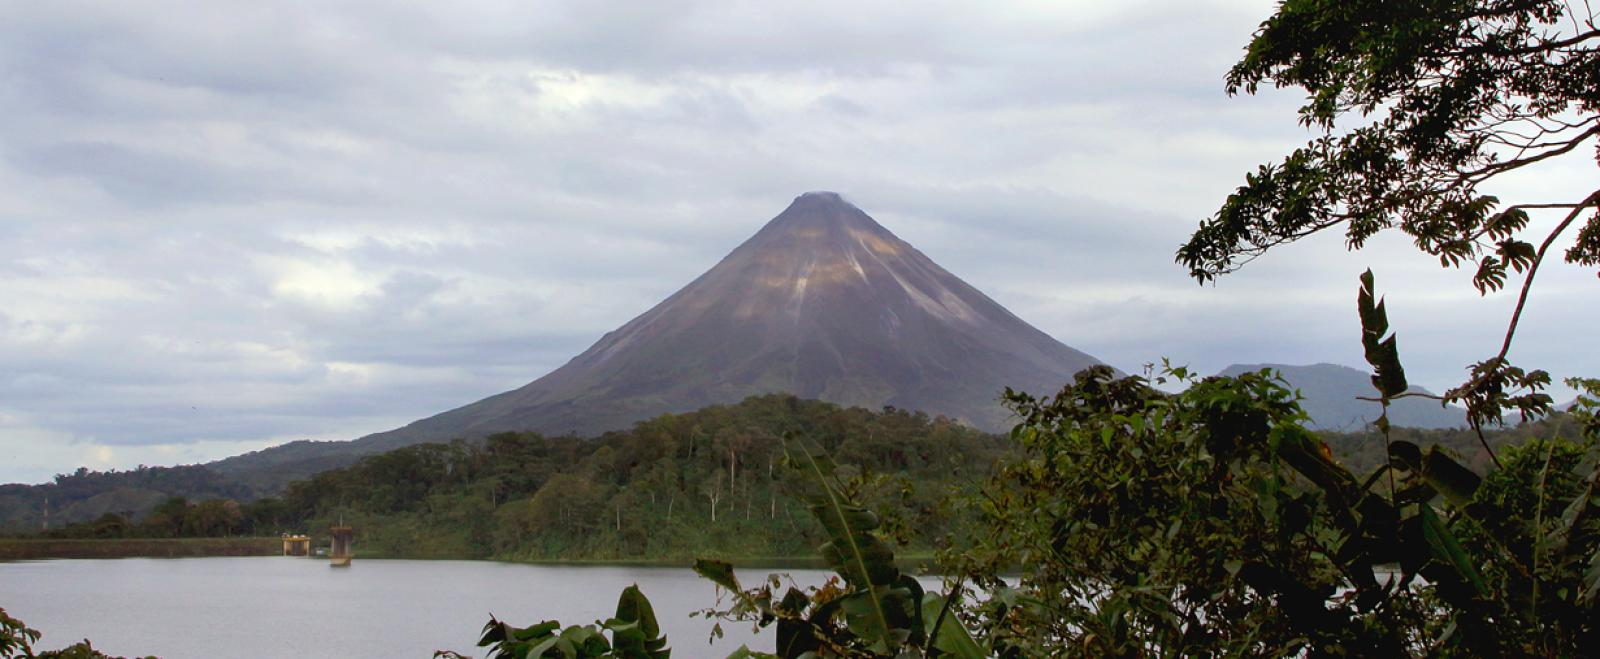 Volunteers on a tailor-made group trip see a volcano on their weekend sightseeing trip.